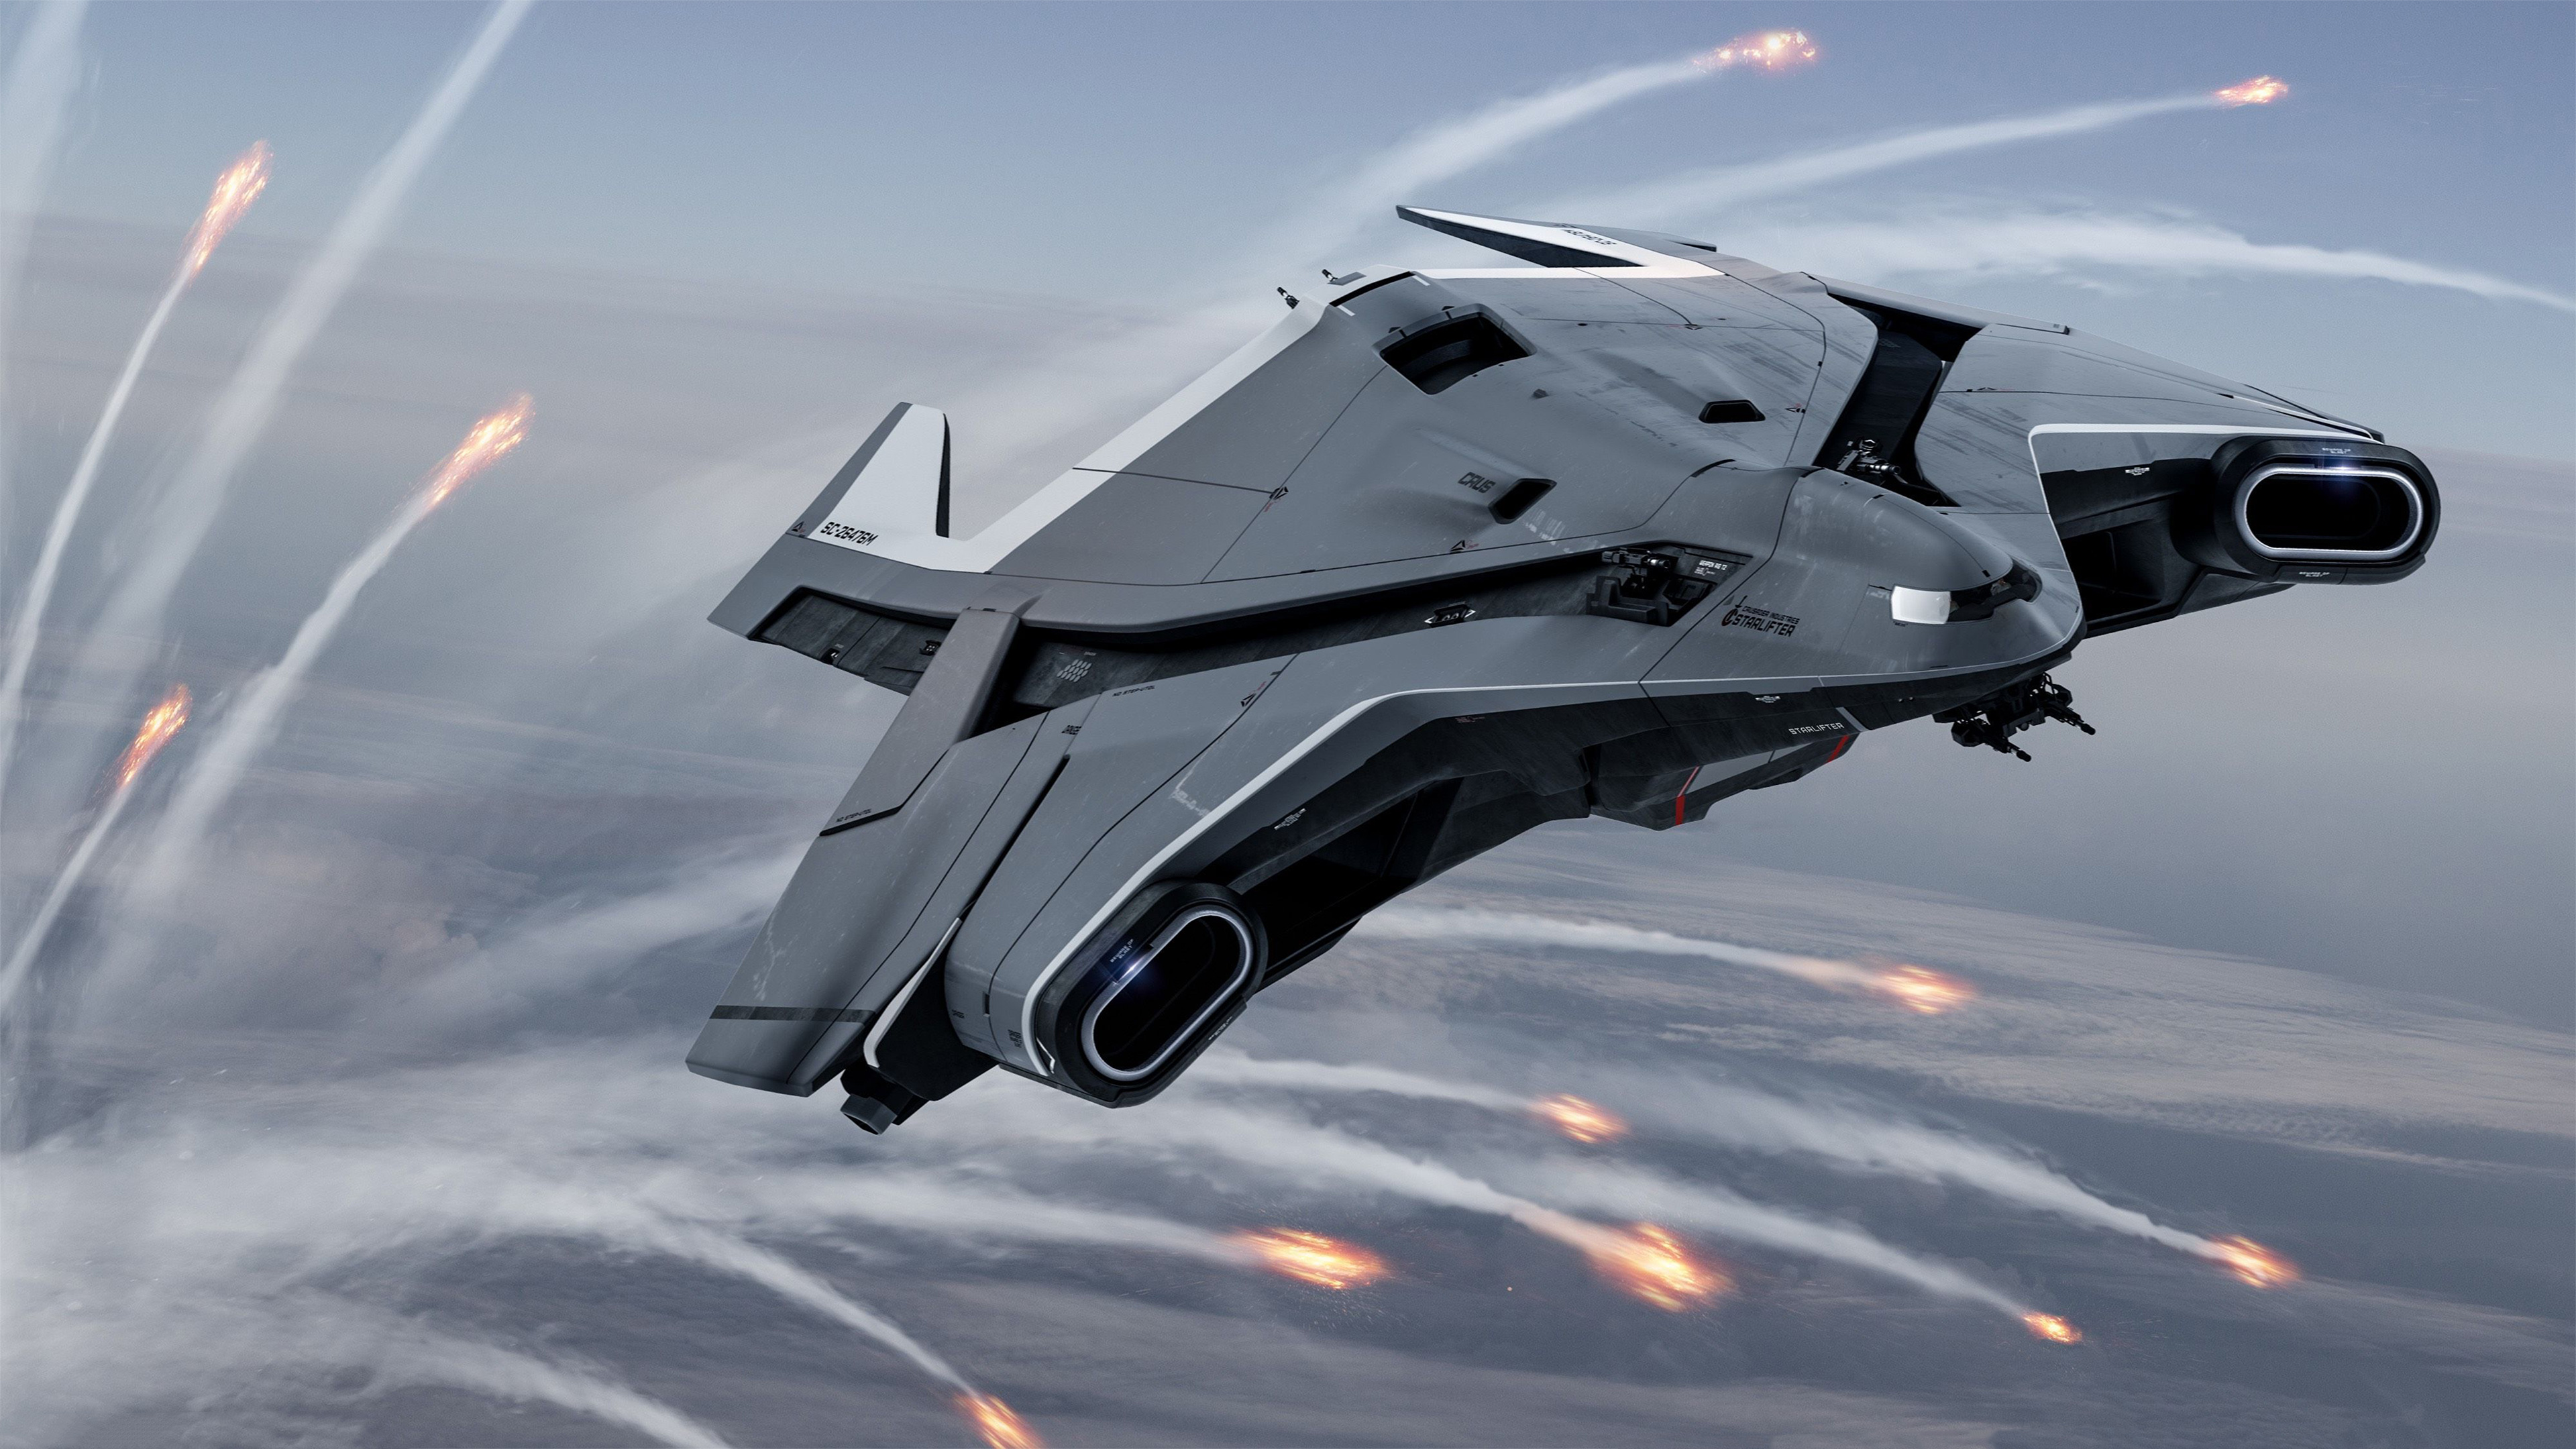 Star Citizen Spaceships 4k, HD Games, 4k Wallpapers